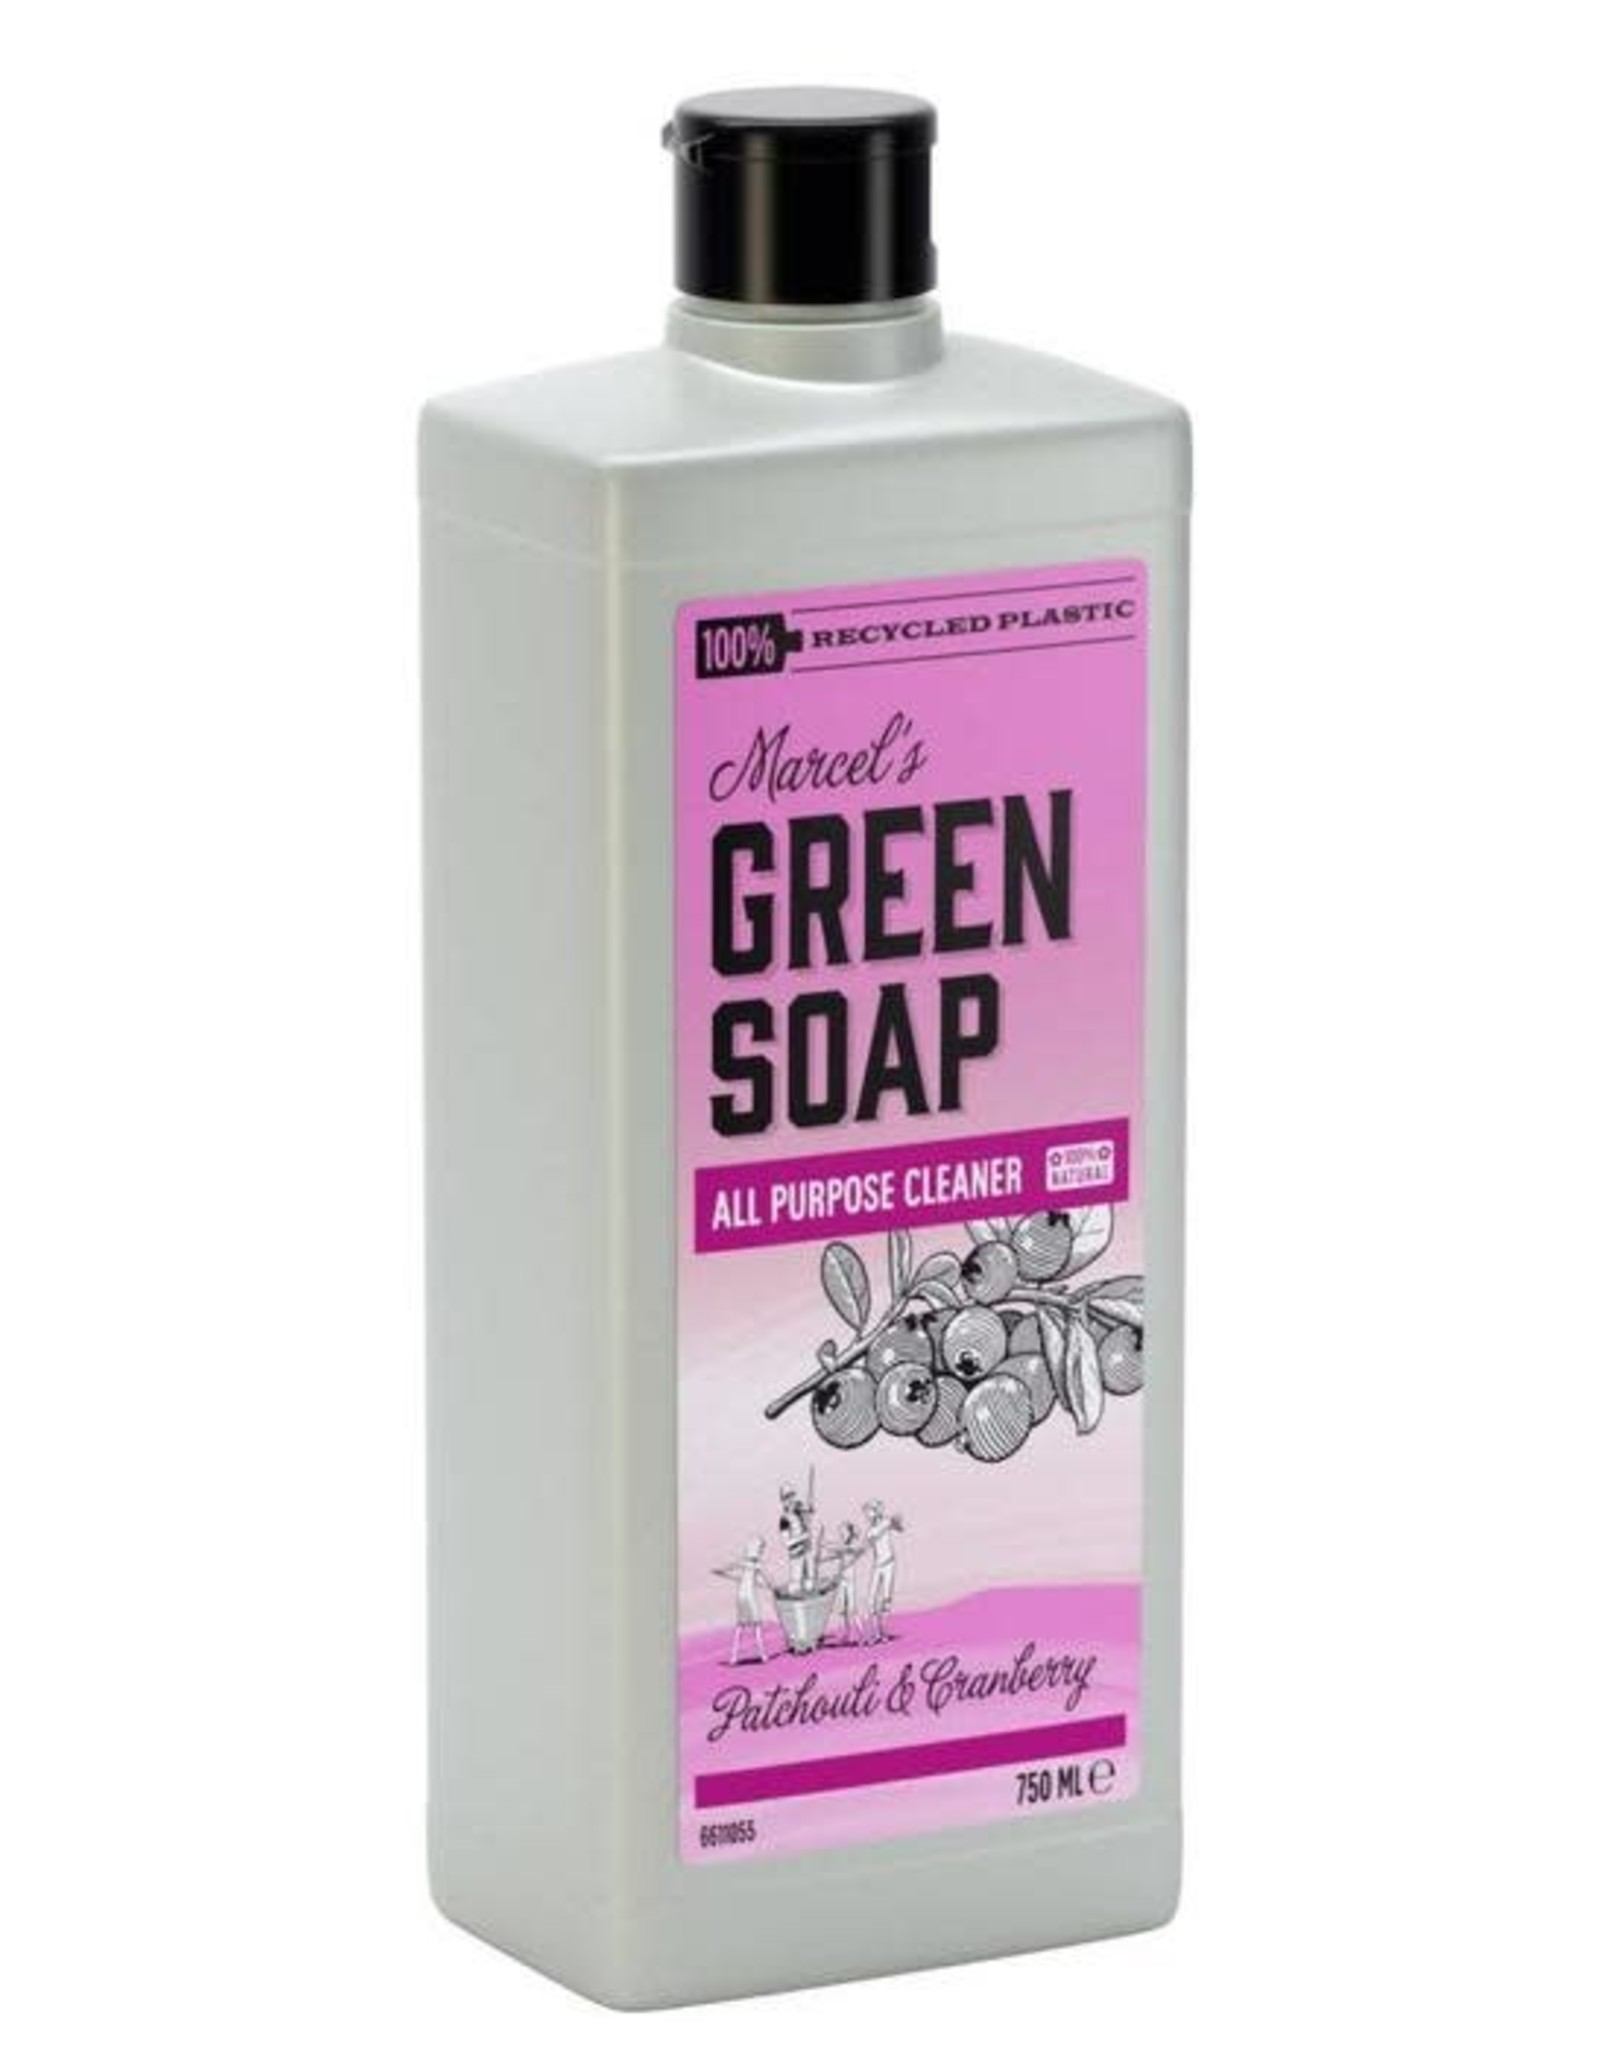 Marcel's Green Soap All Purpose Cleaner Patchouli & Cranberry 750 ml